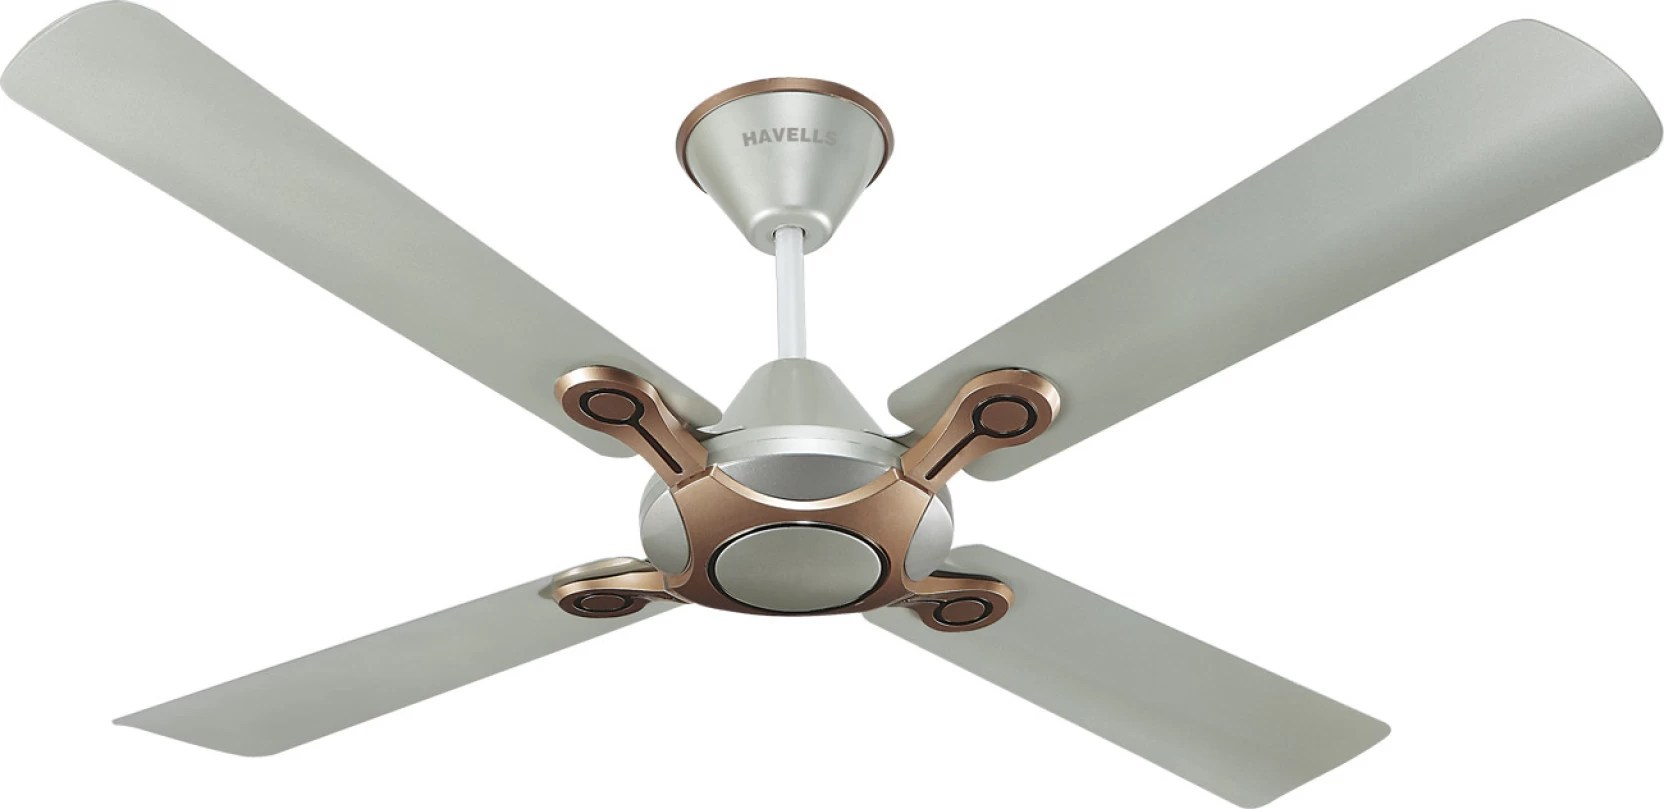 Eight Bladed Ceiling Fan Havells Leganza 4blade 4 Blade Ceiling Fan Price In India